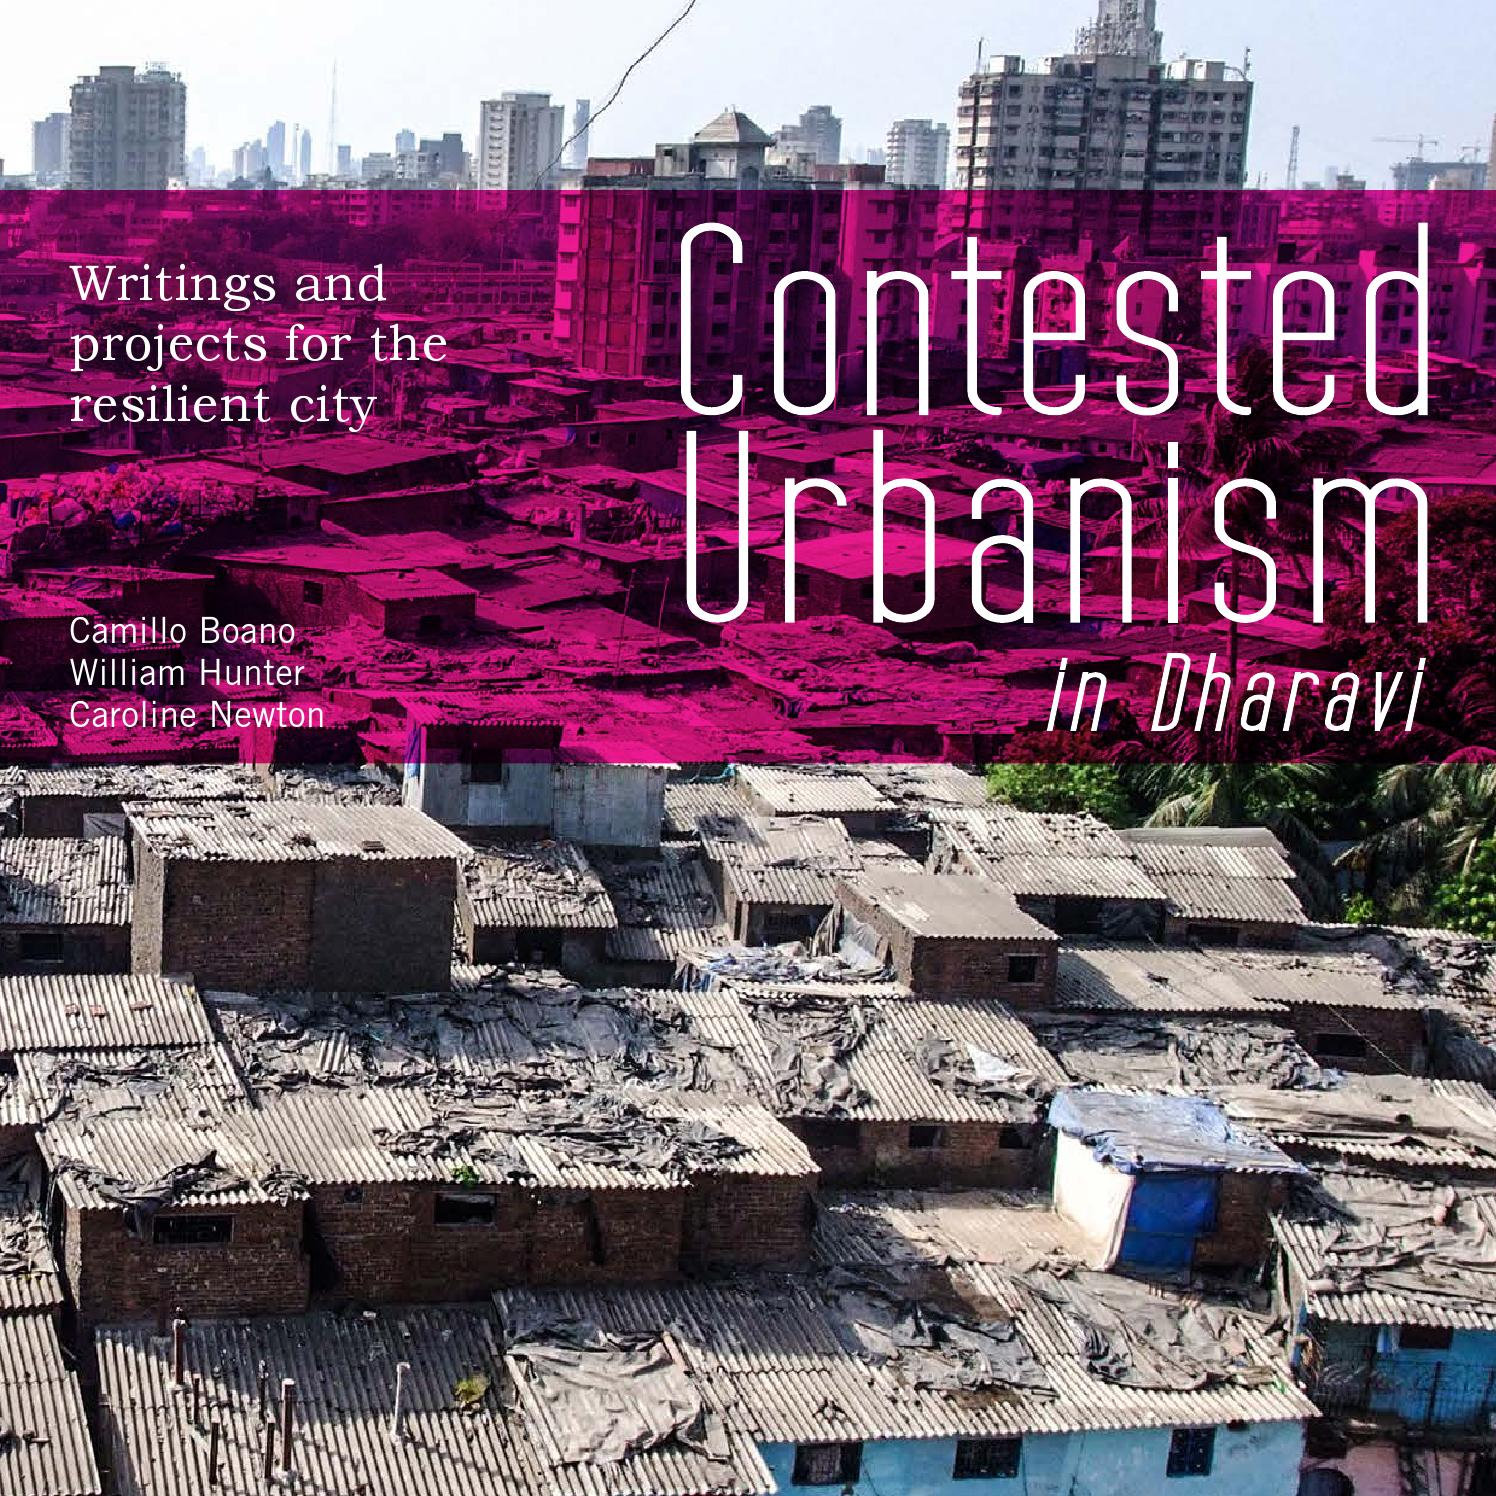 c683f8da0b33 Contested Urbanism in Dharavi by development planning unit - issuu